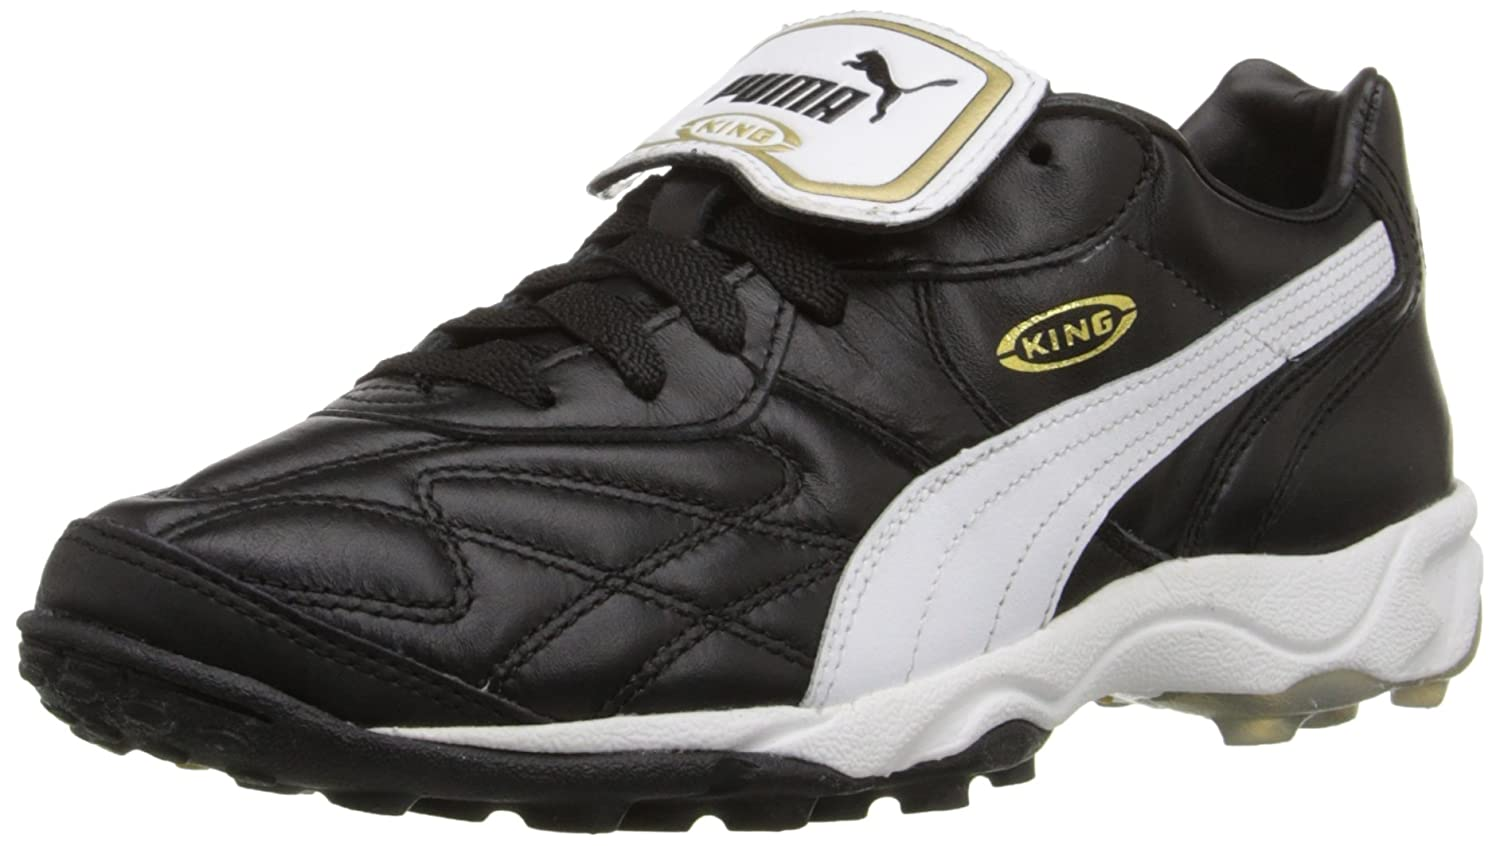 PUMA Men's King Allround TT Soccer Cleat B0009RSSHQ 8.5 D(M) US|Black/White/Gold